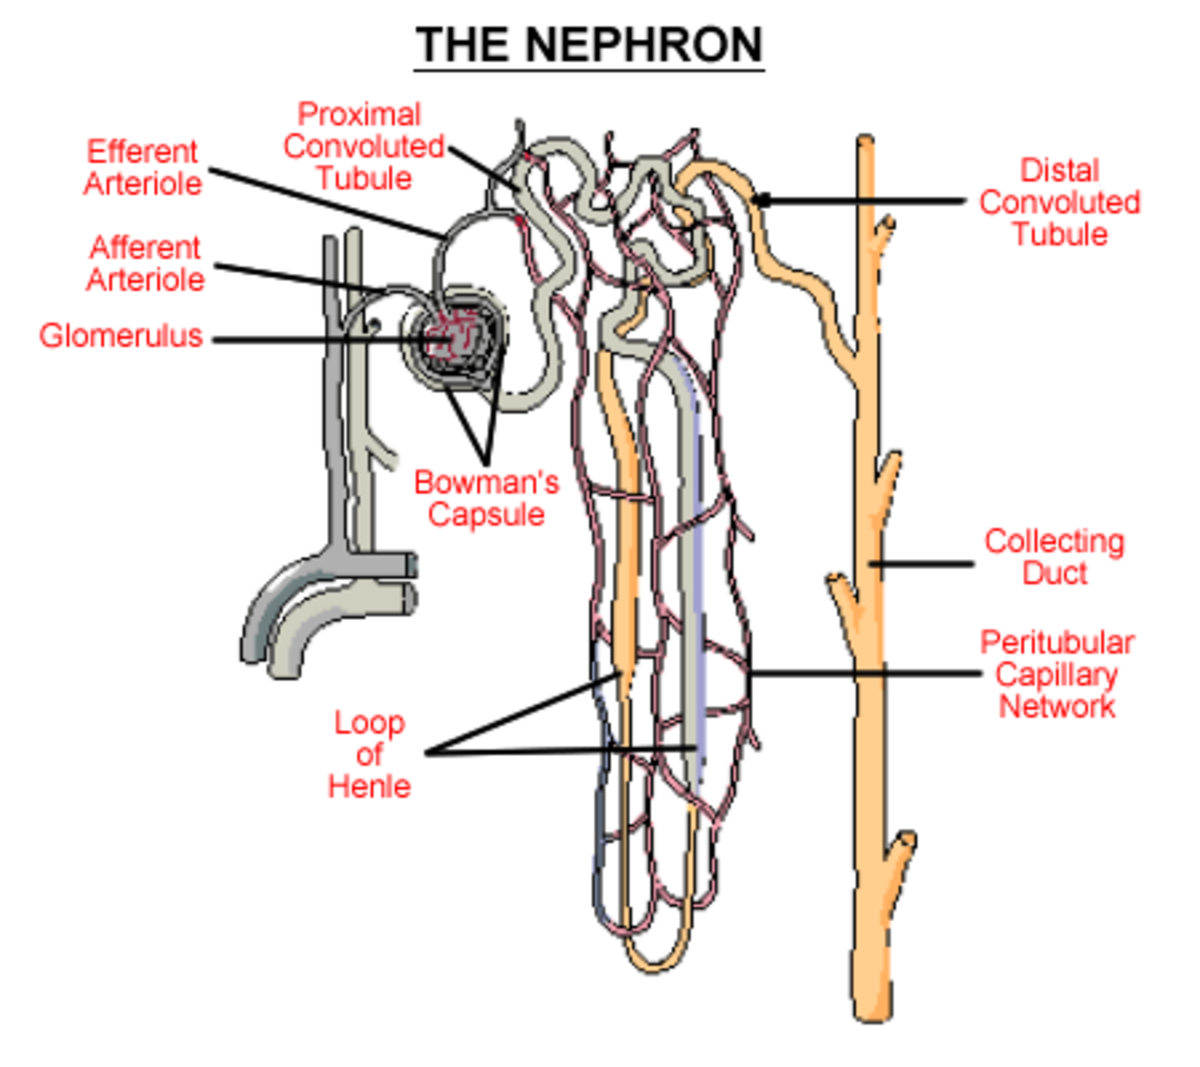 The filtration apparatus of the individual nephron. This is an amazingly intricate network of blood vessels and ducts, performing complex operations of selective excretion and reabsorption.